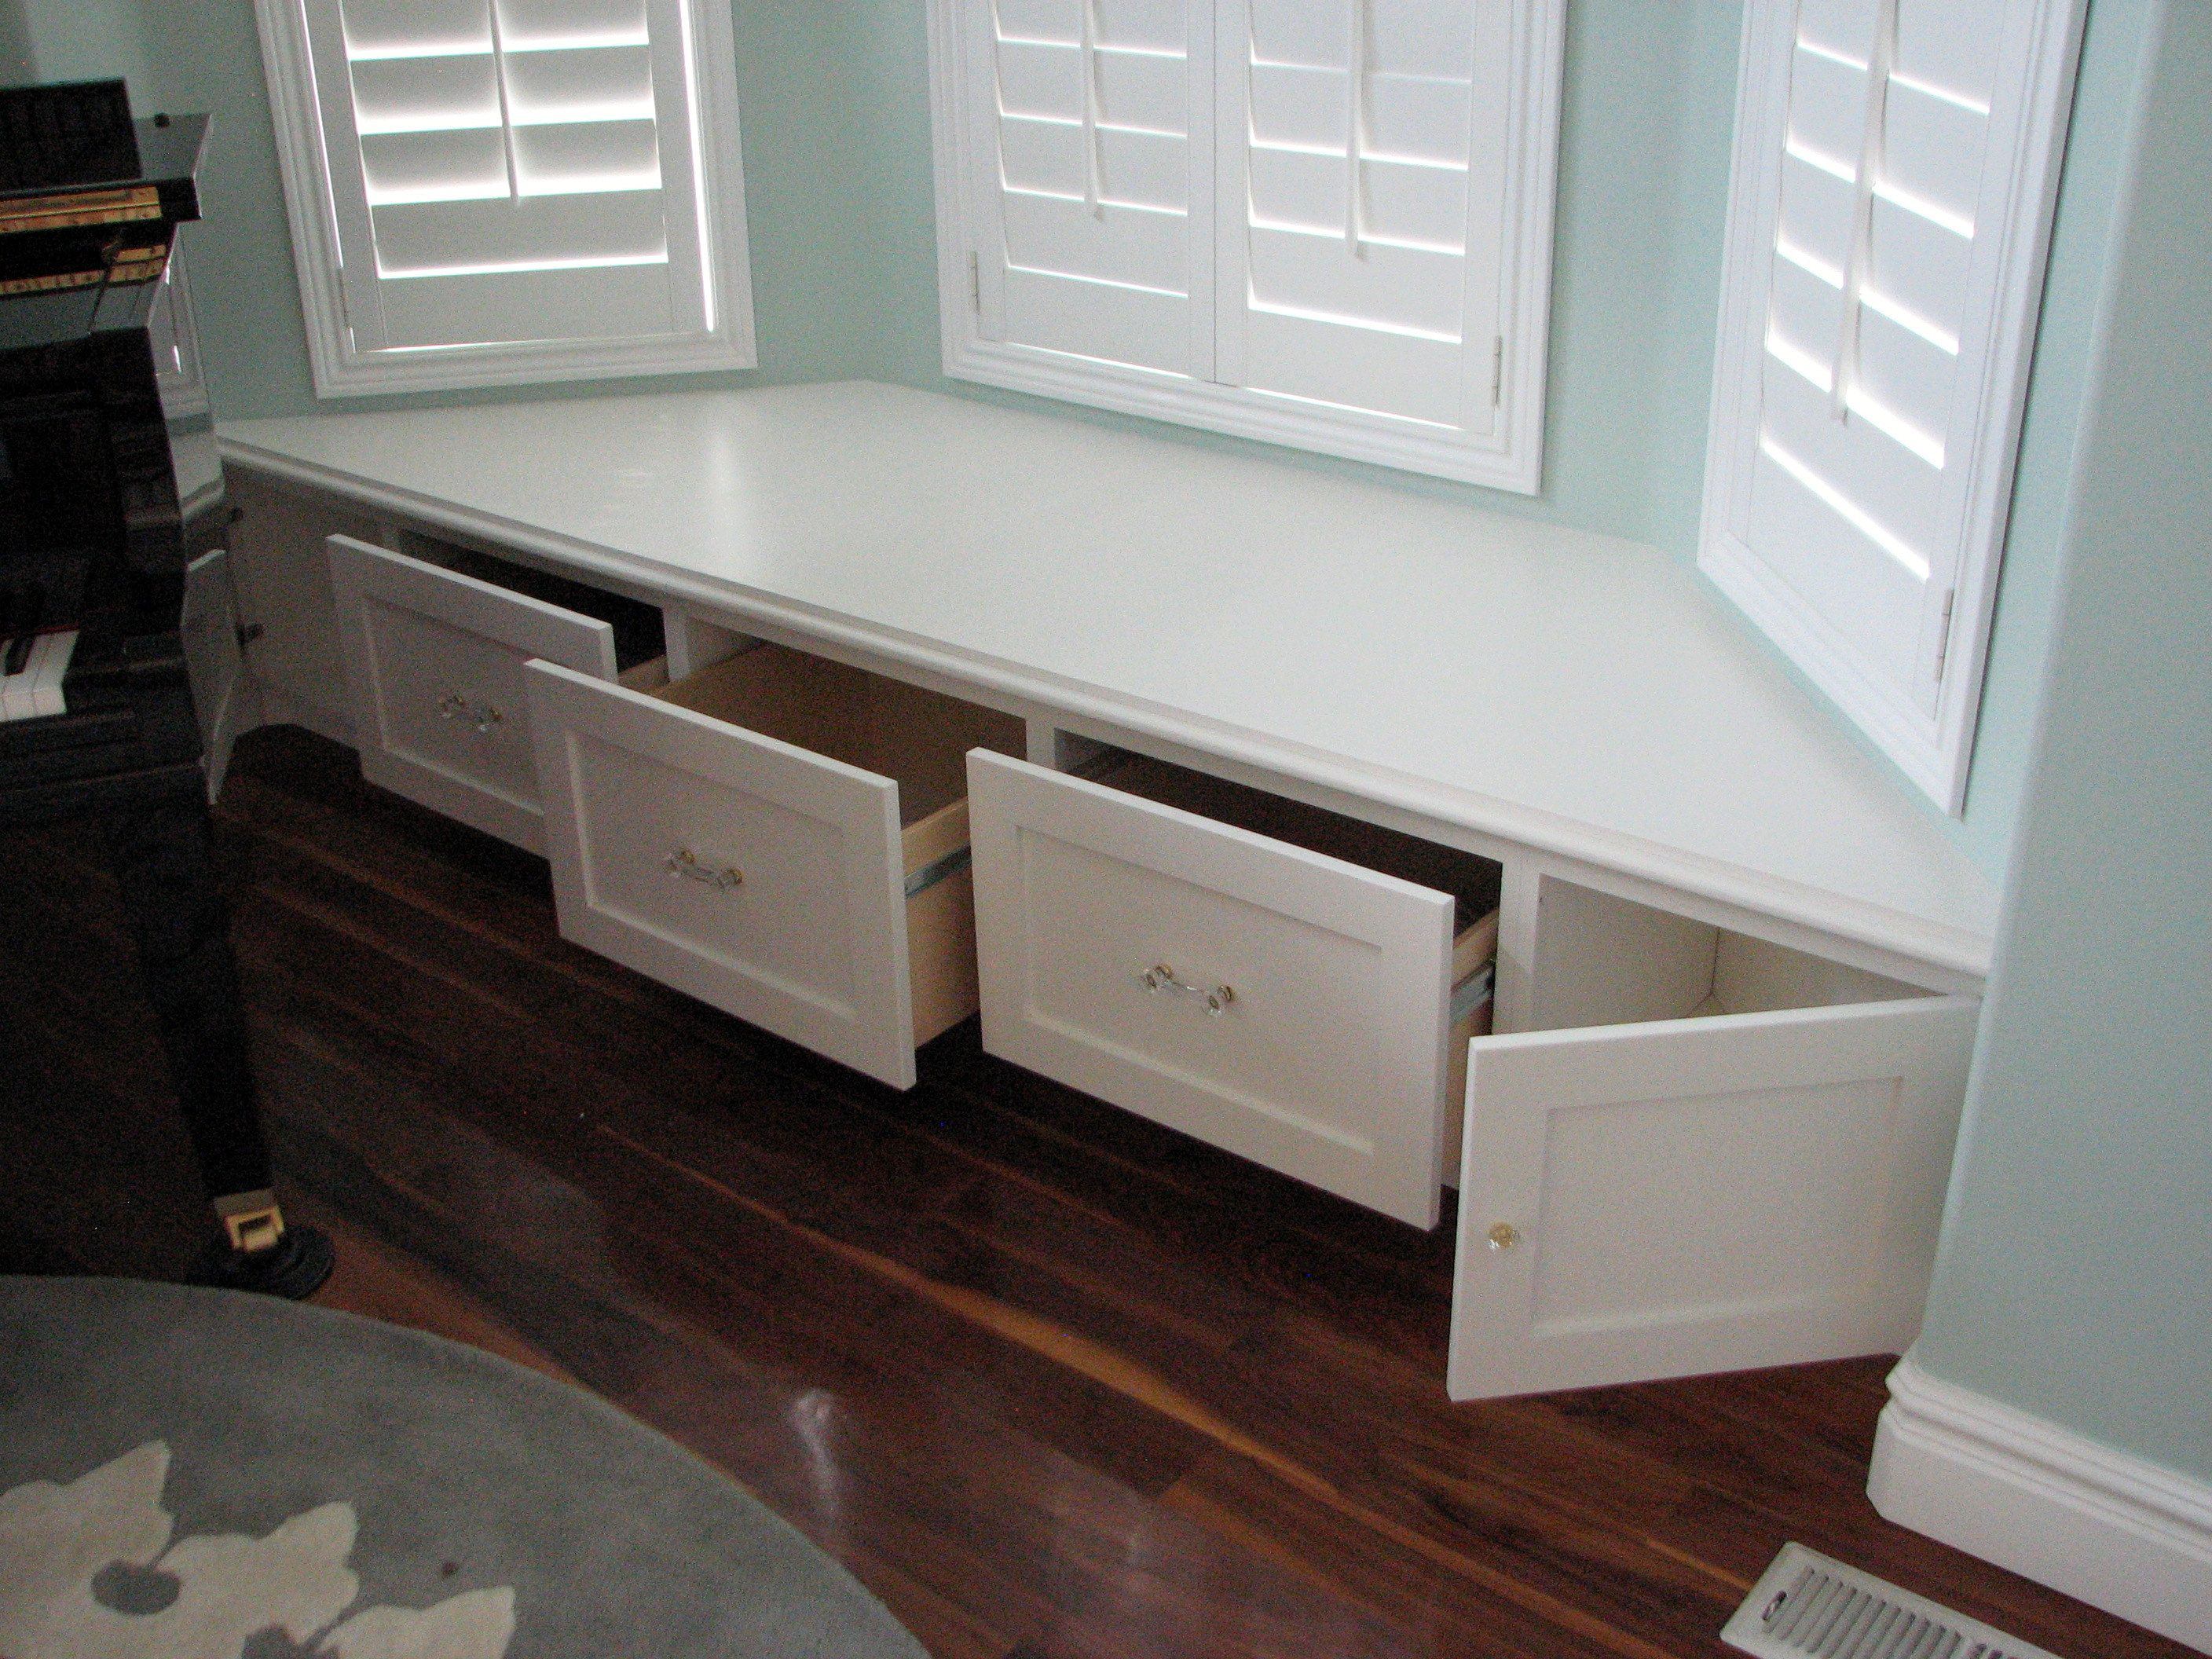 Bay window seat books - Explore Bay Window Benches Window Seat Storage And More